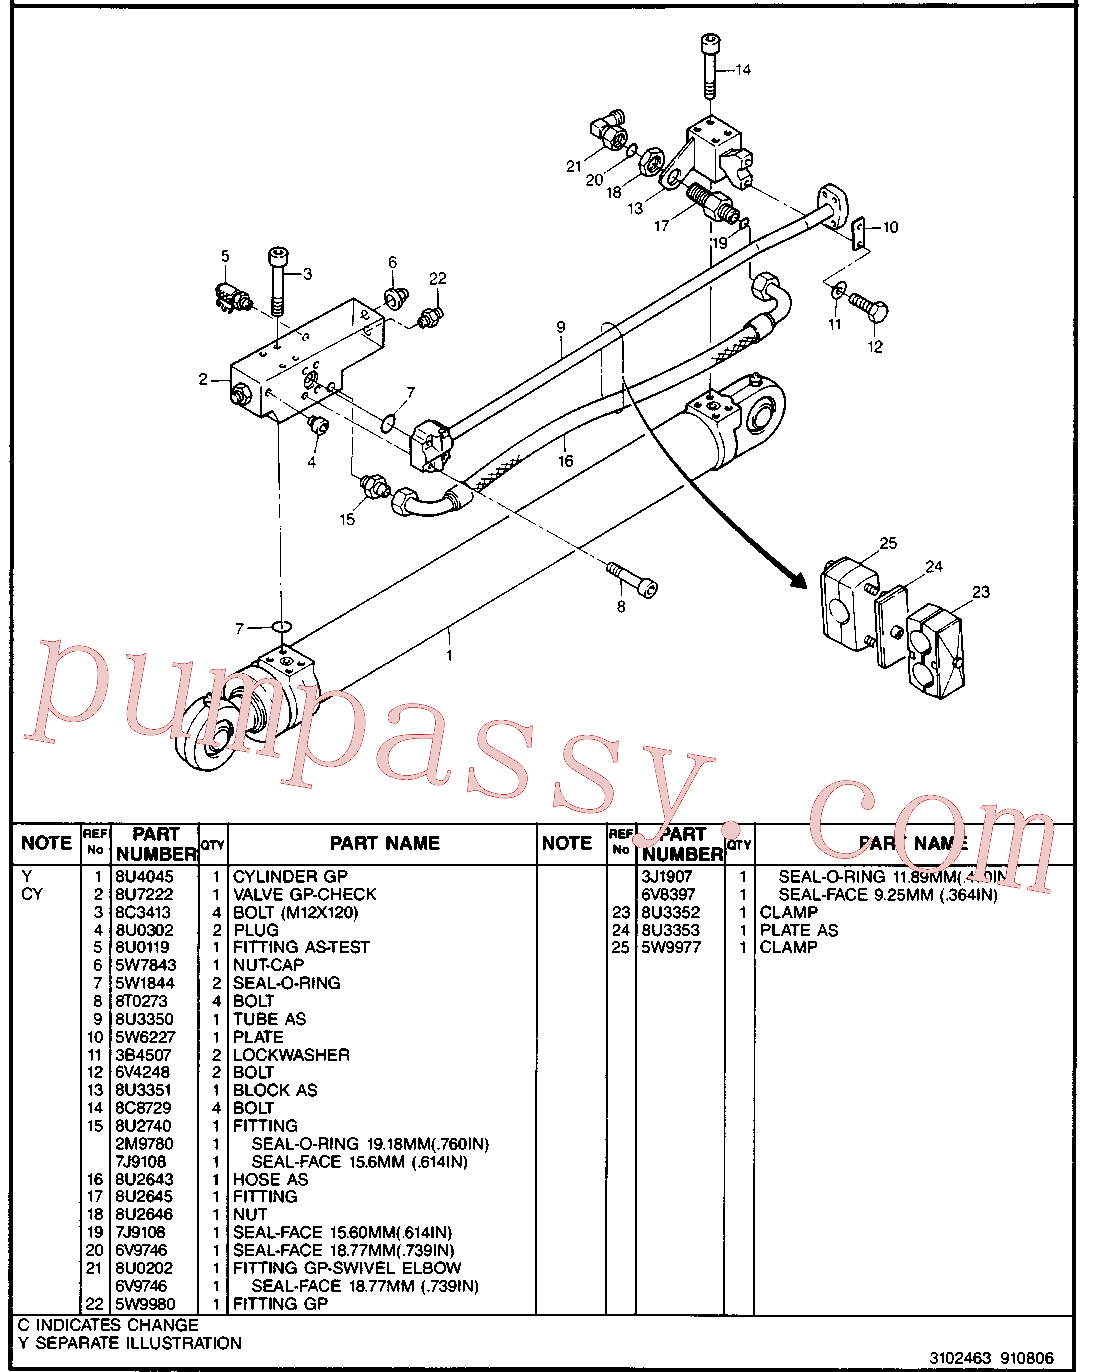 CAT 8C-8729 for 160M 2 Motor Grader(MG) hydraulic system 8U-3347 Assembly